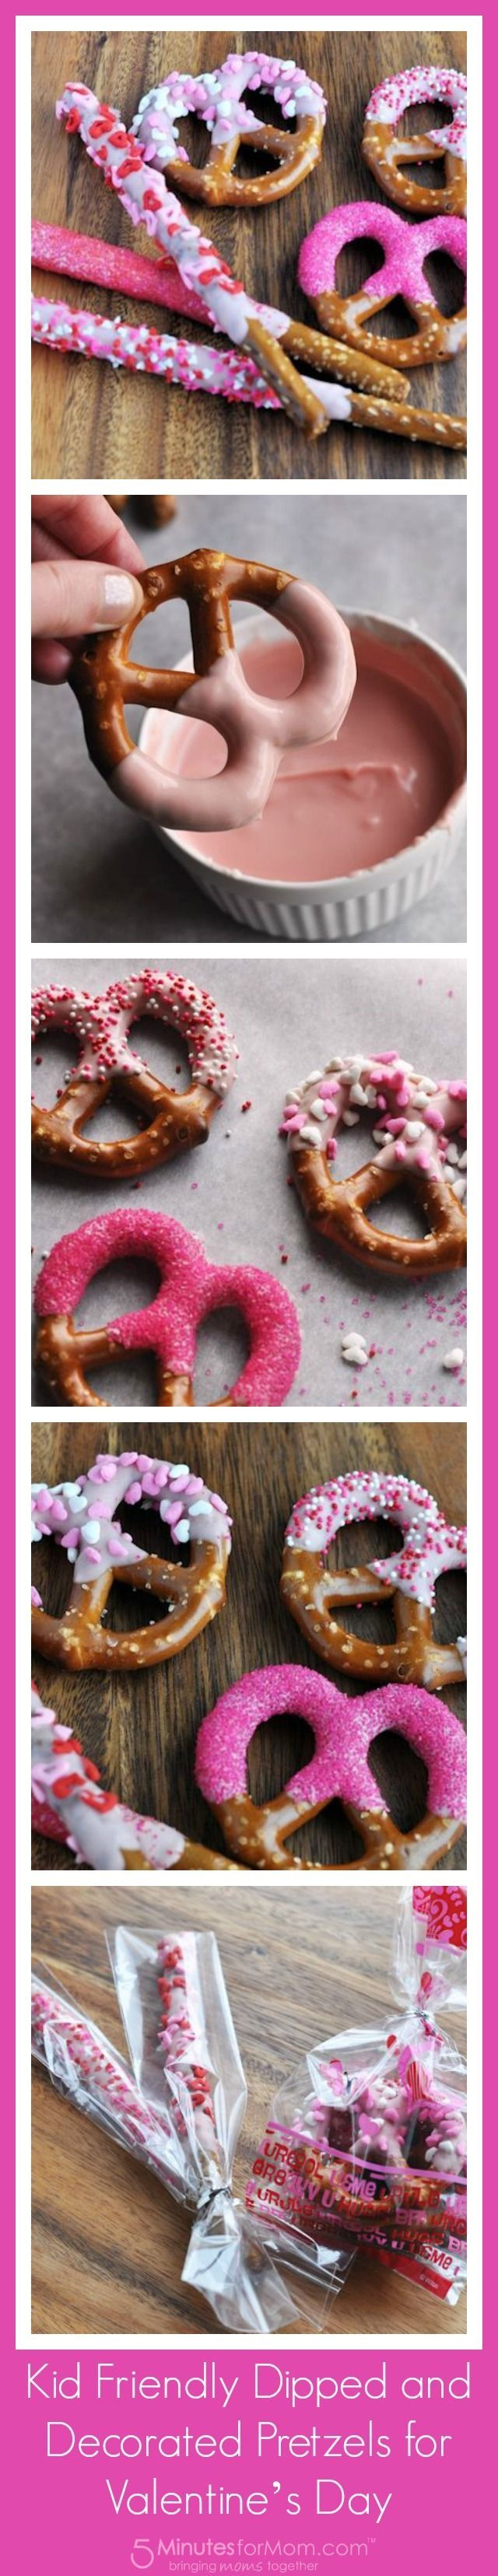 Cute and easy treats